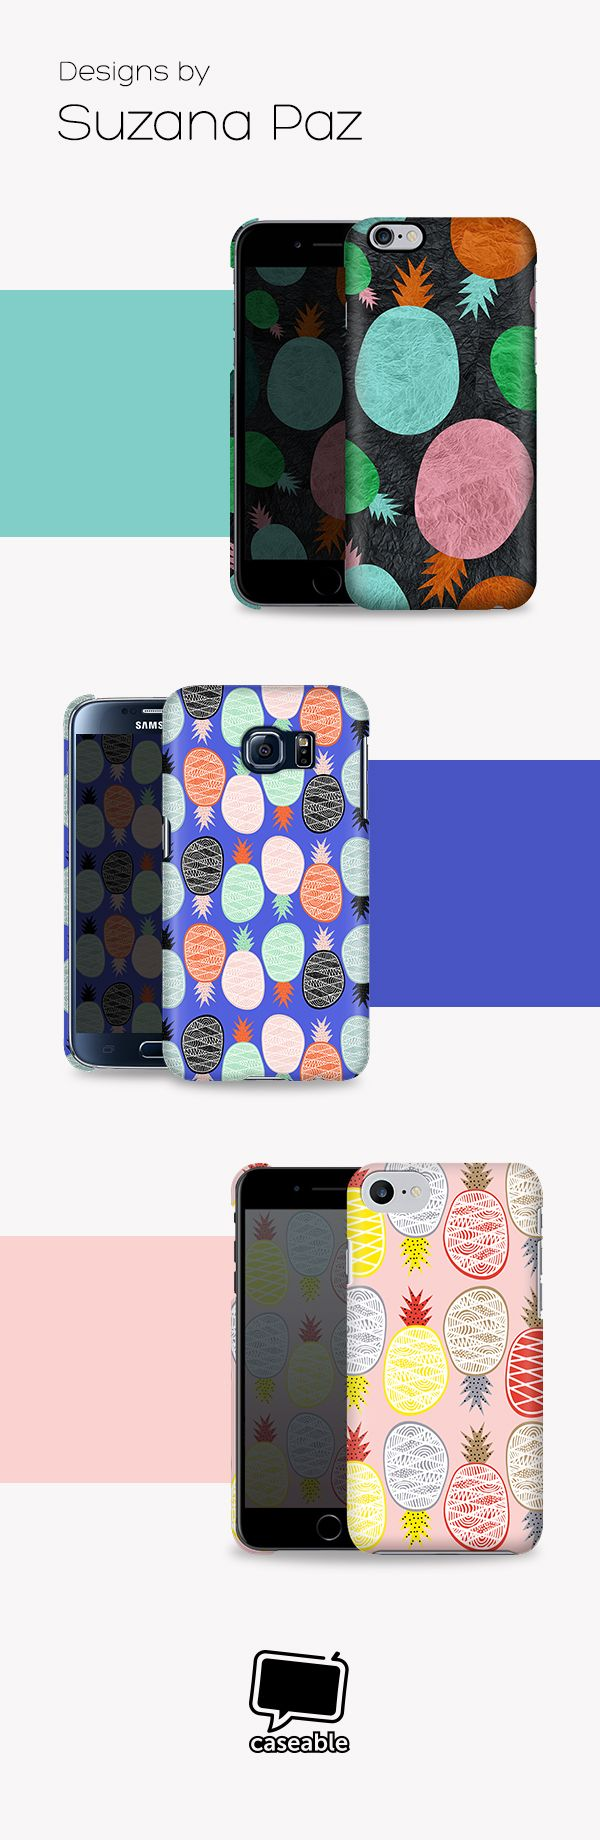 Pinapple designs by Susana Paz for your Smartphone Cover.